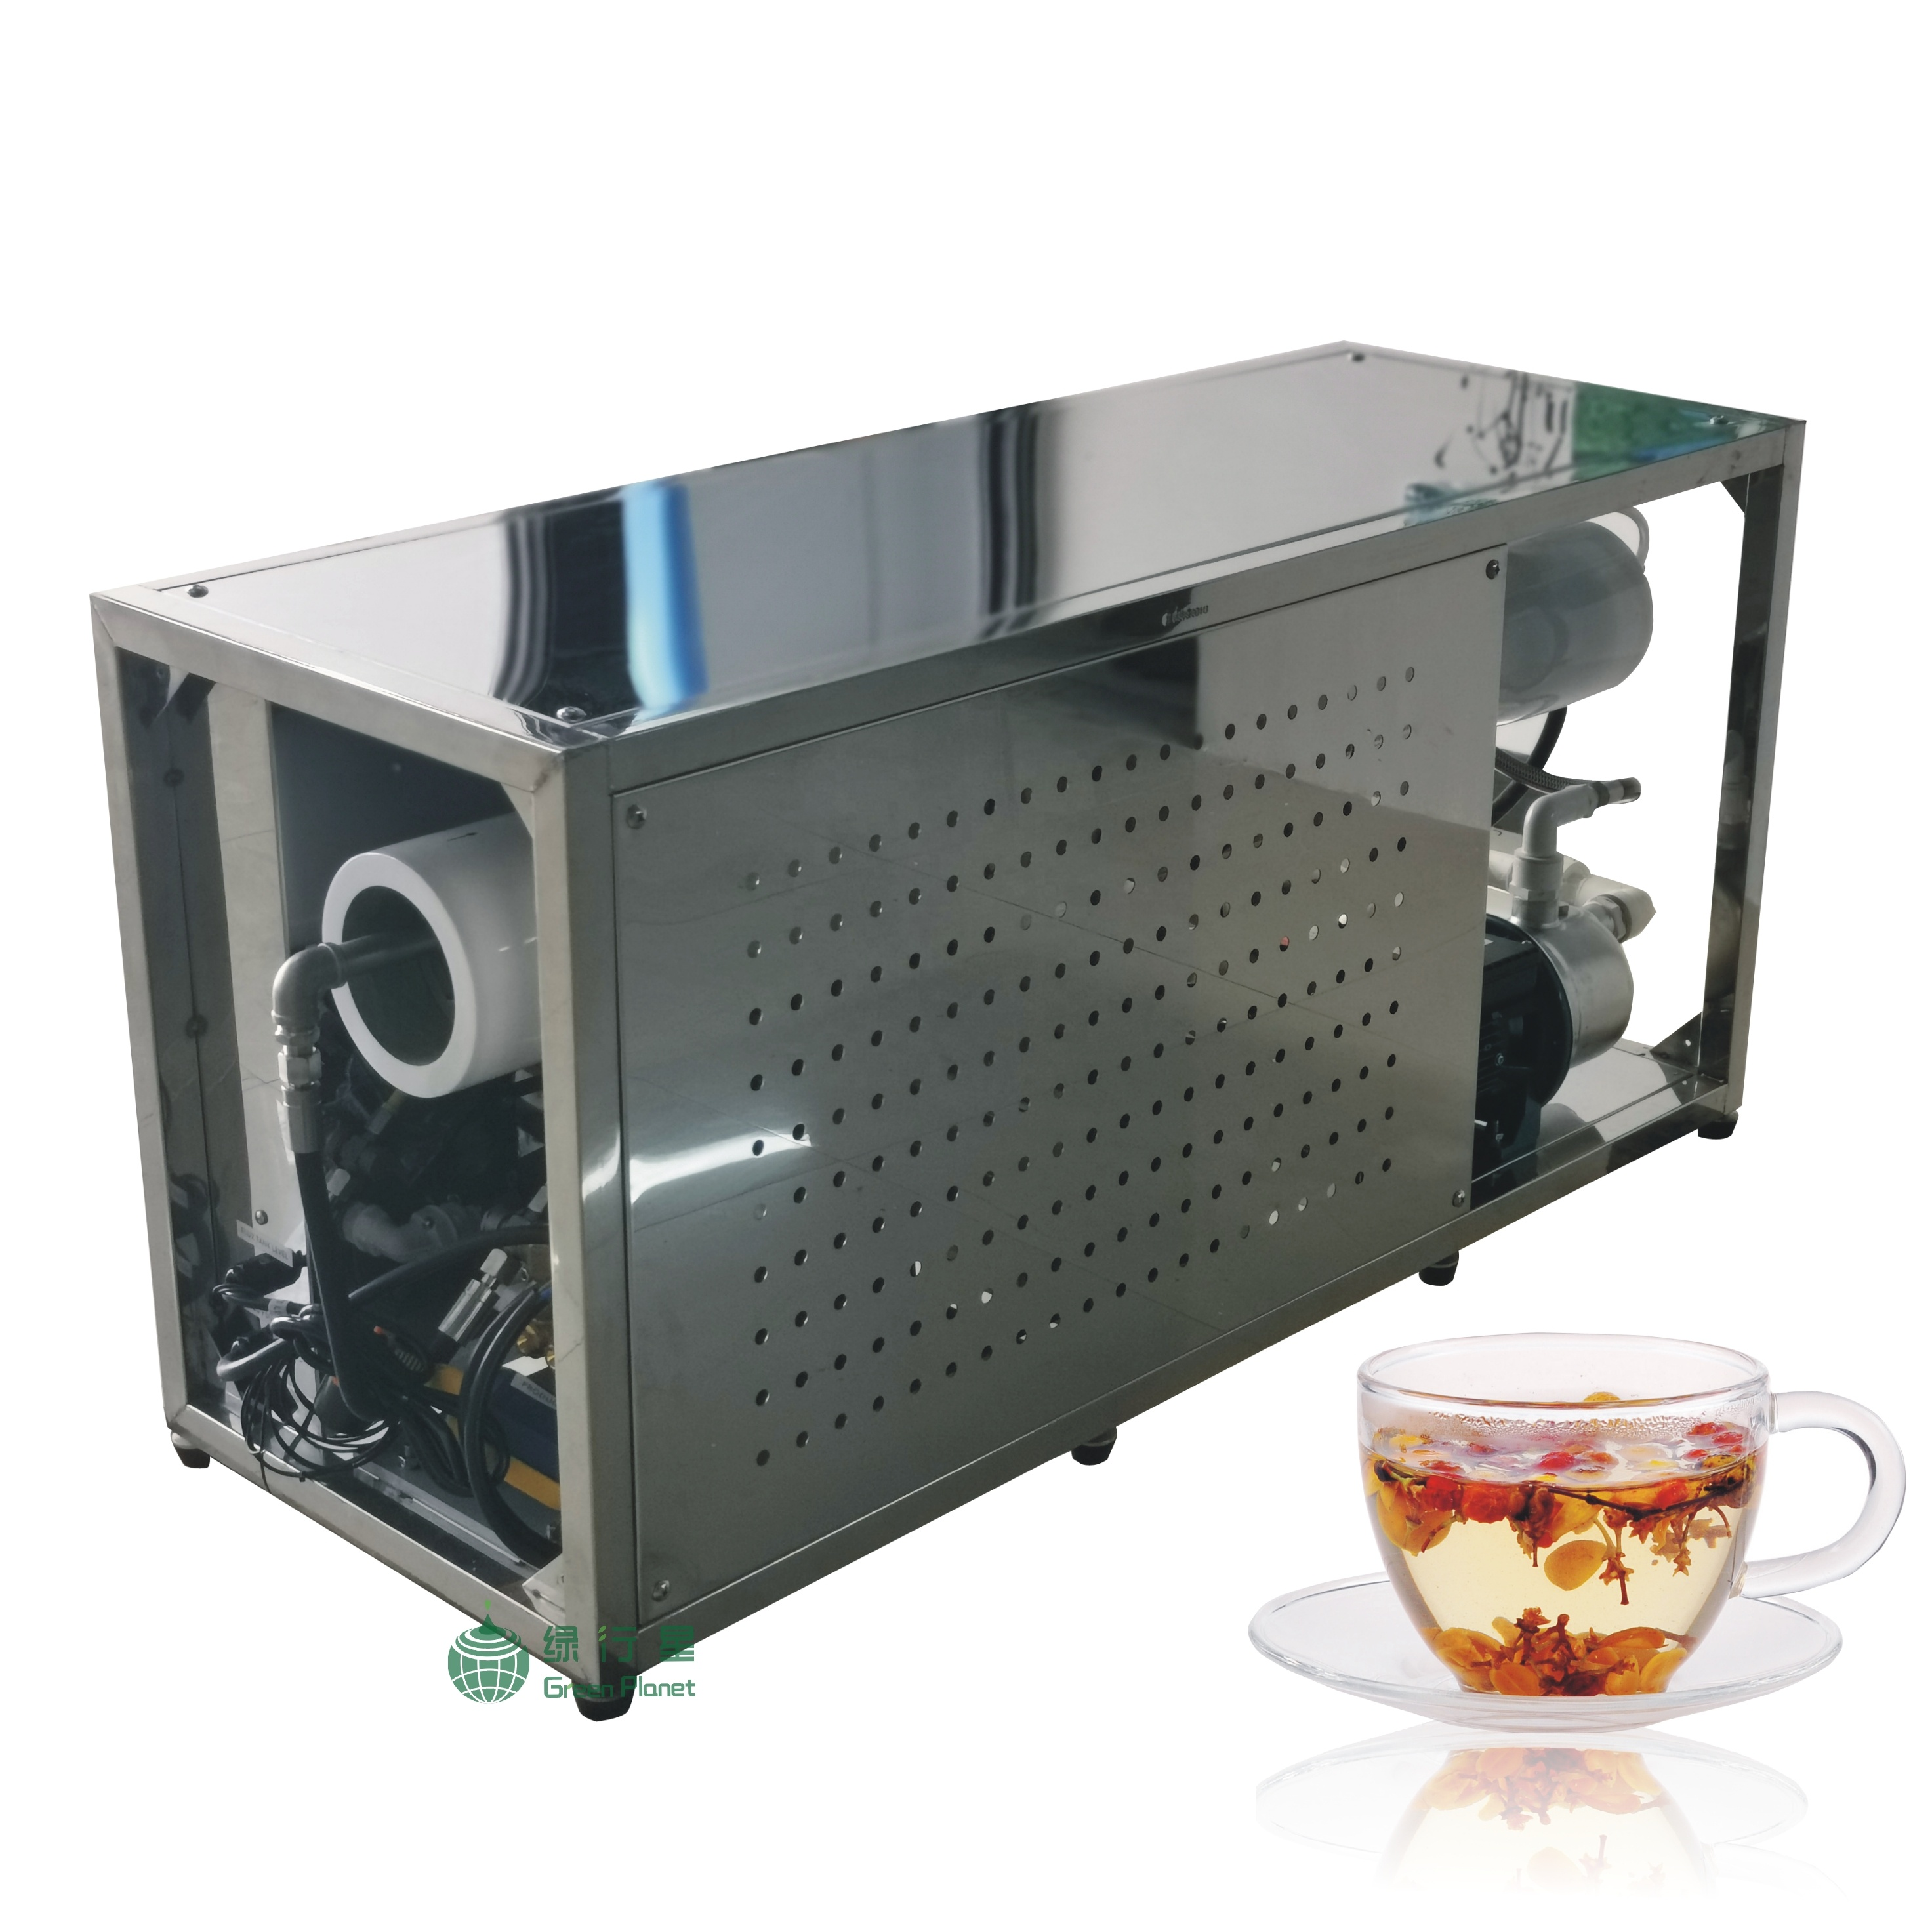 5m3/D Marine Compact full automatic seawater Desalinator /system /equipment/ device/ machine